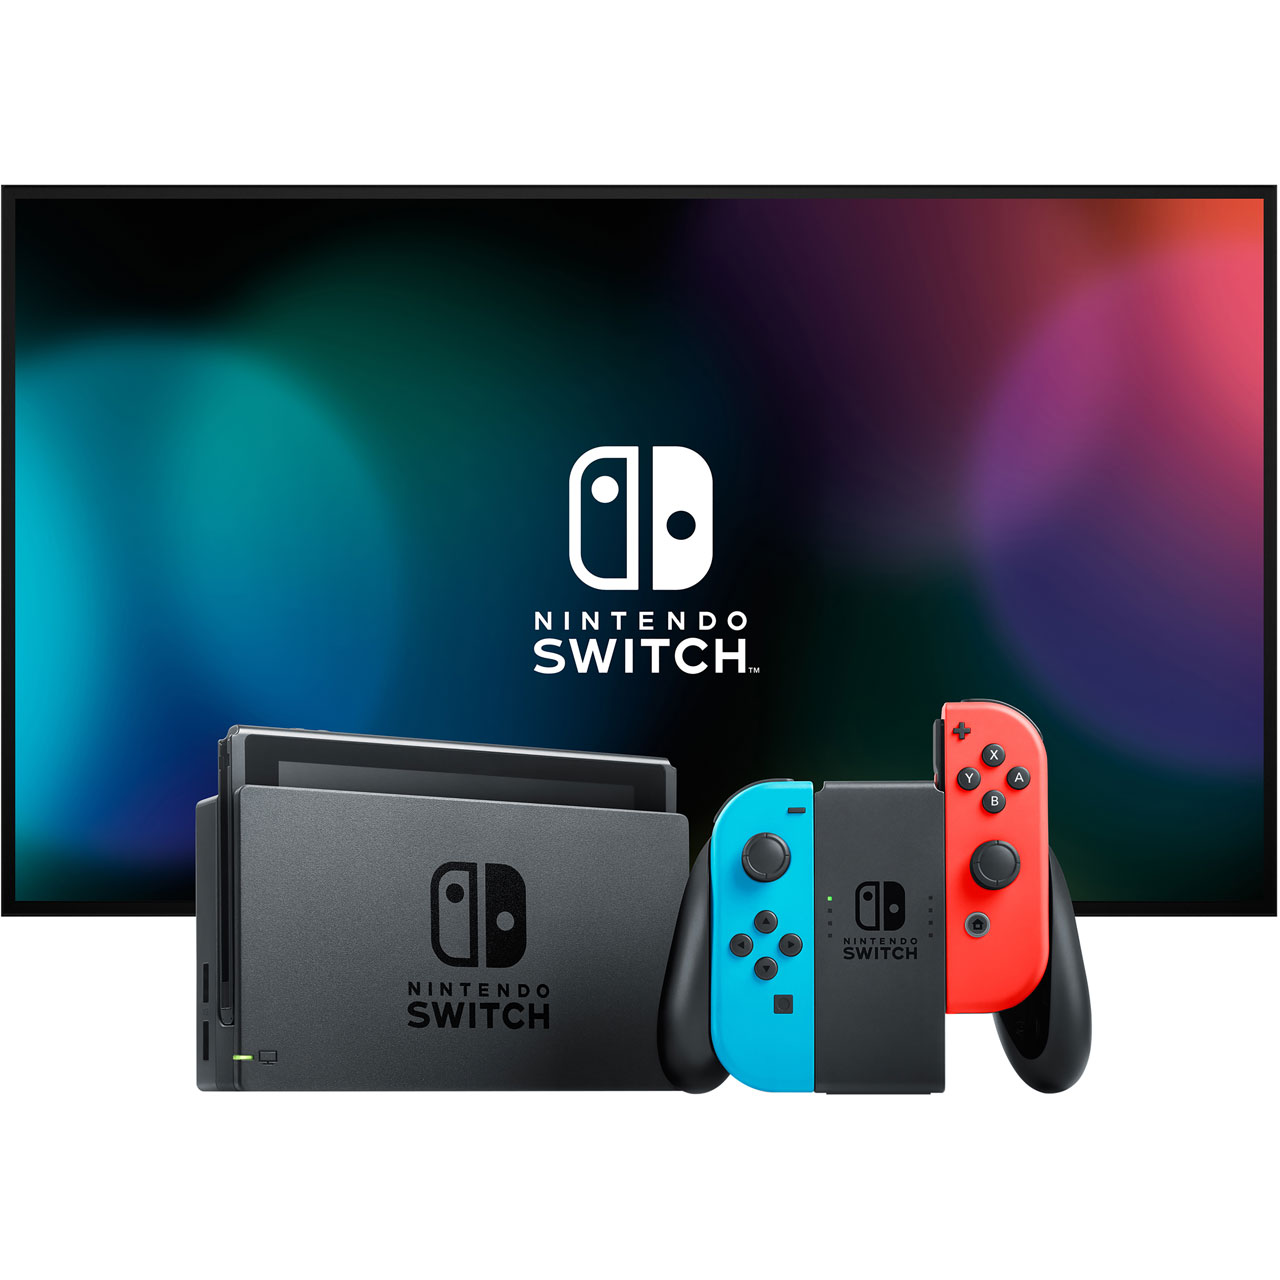 Nintendo Switch 32GB with Mario Kart 8 Deluxe - Neon Red/Blue